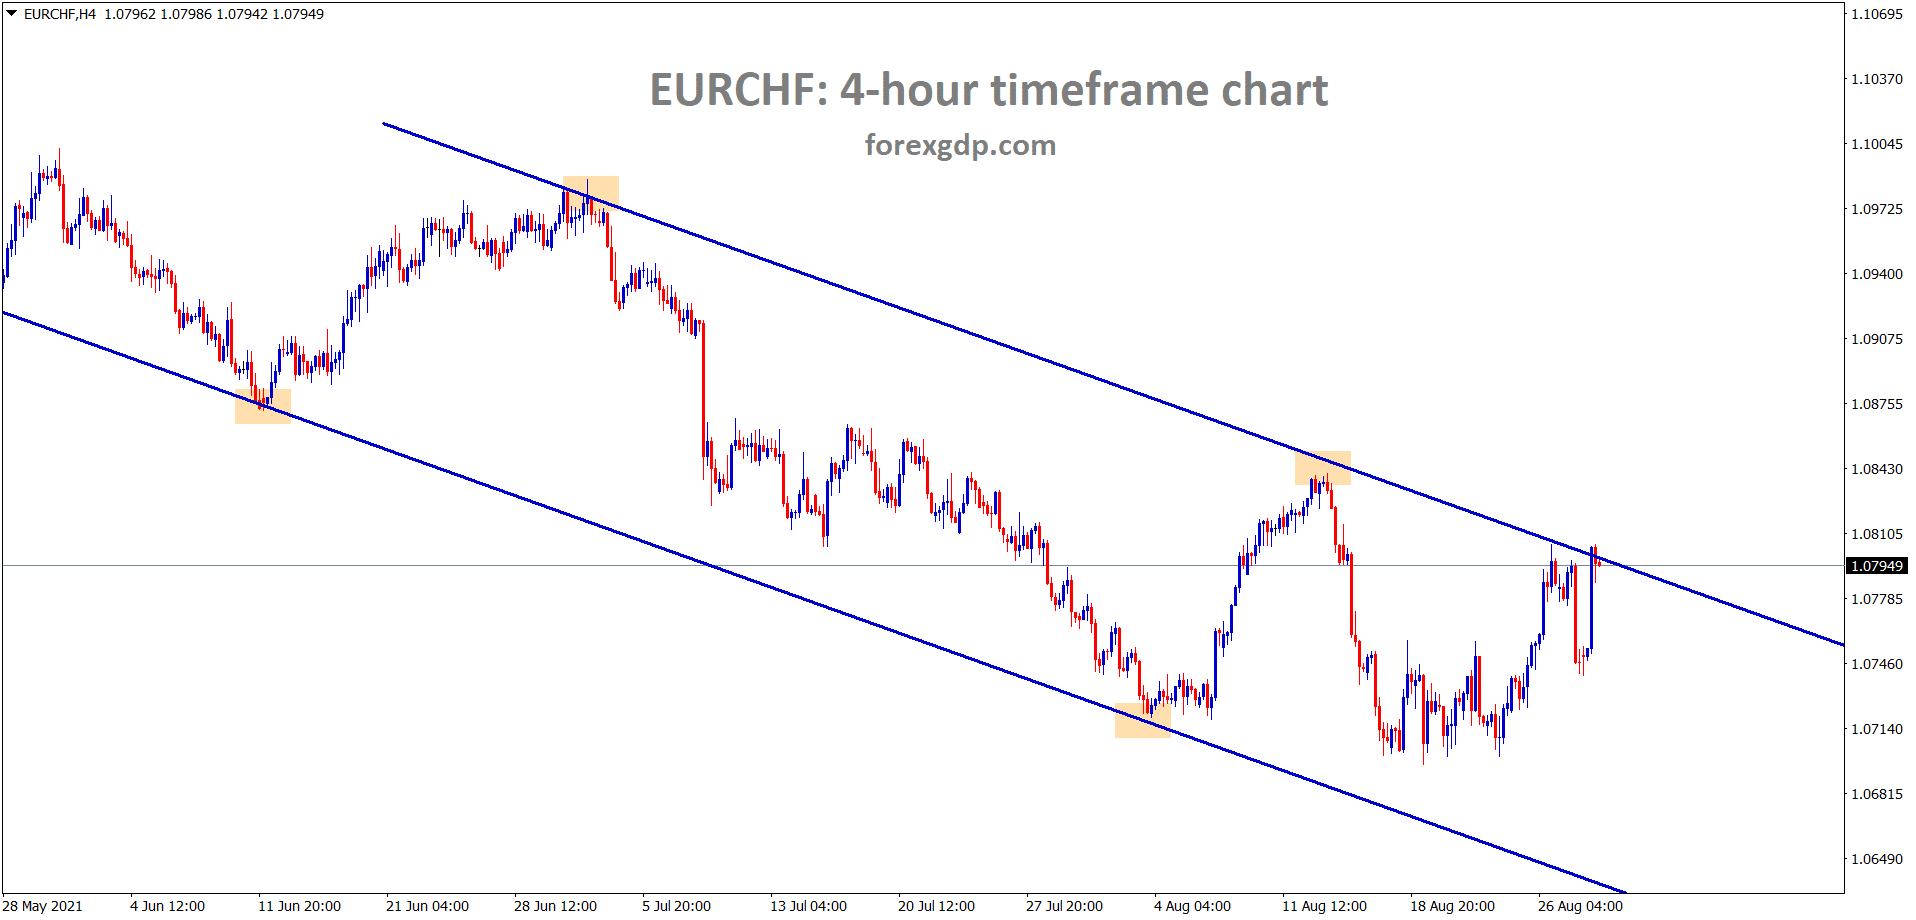 EURCHf reached the lower high area again in the desending channel wait for breakout or reversal